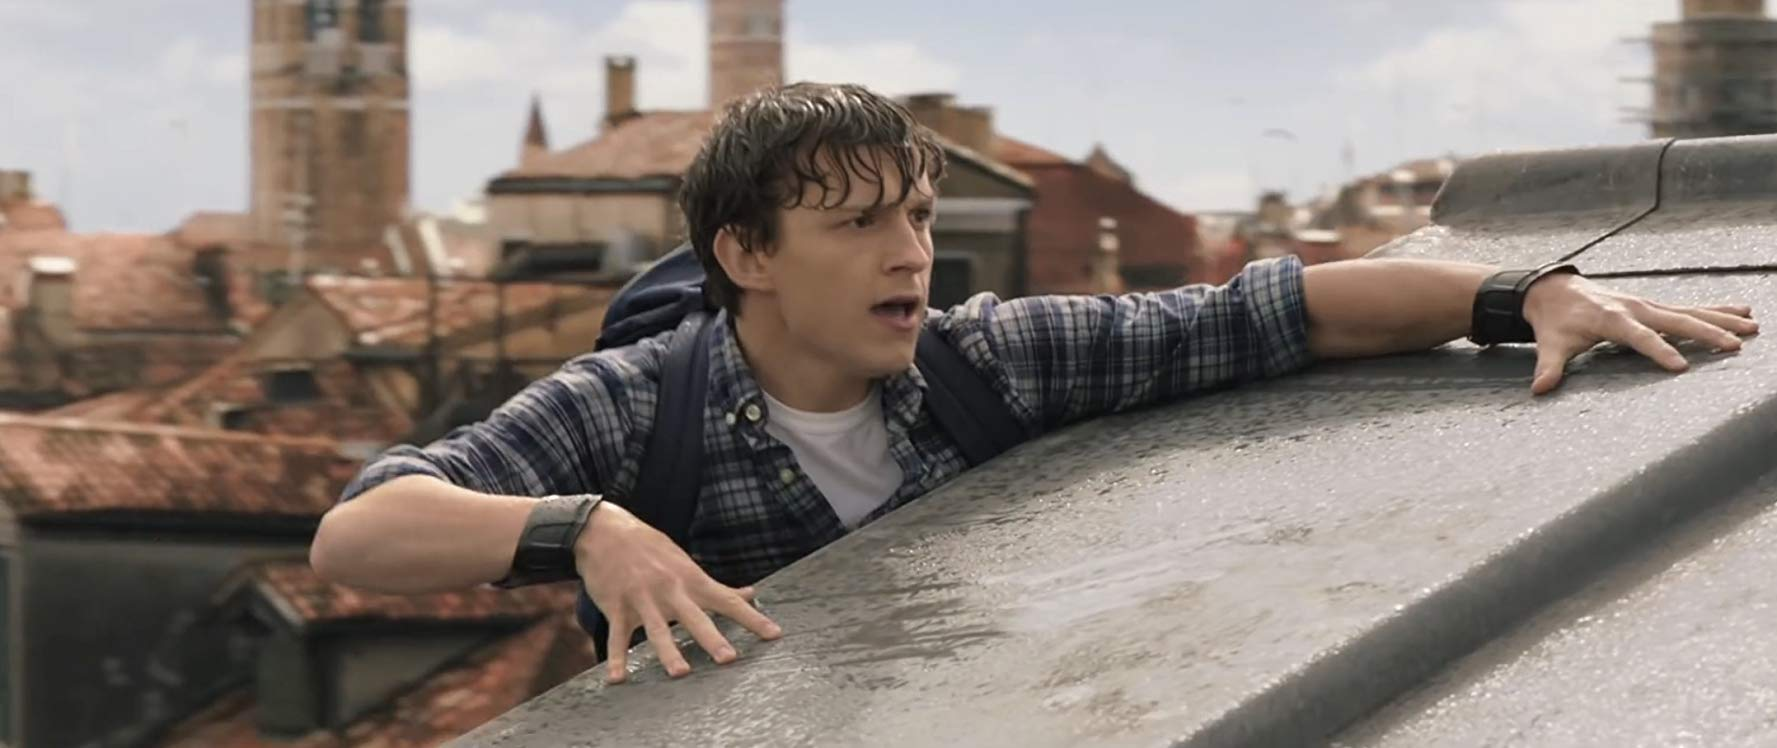 Spider-Man - Far From Home (2019)